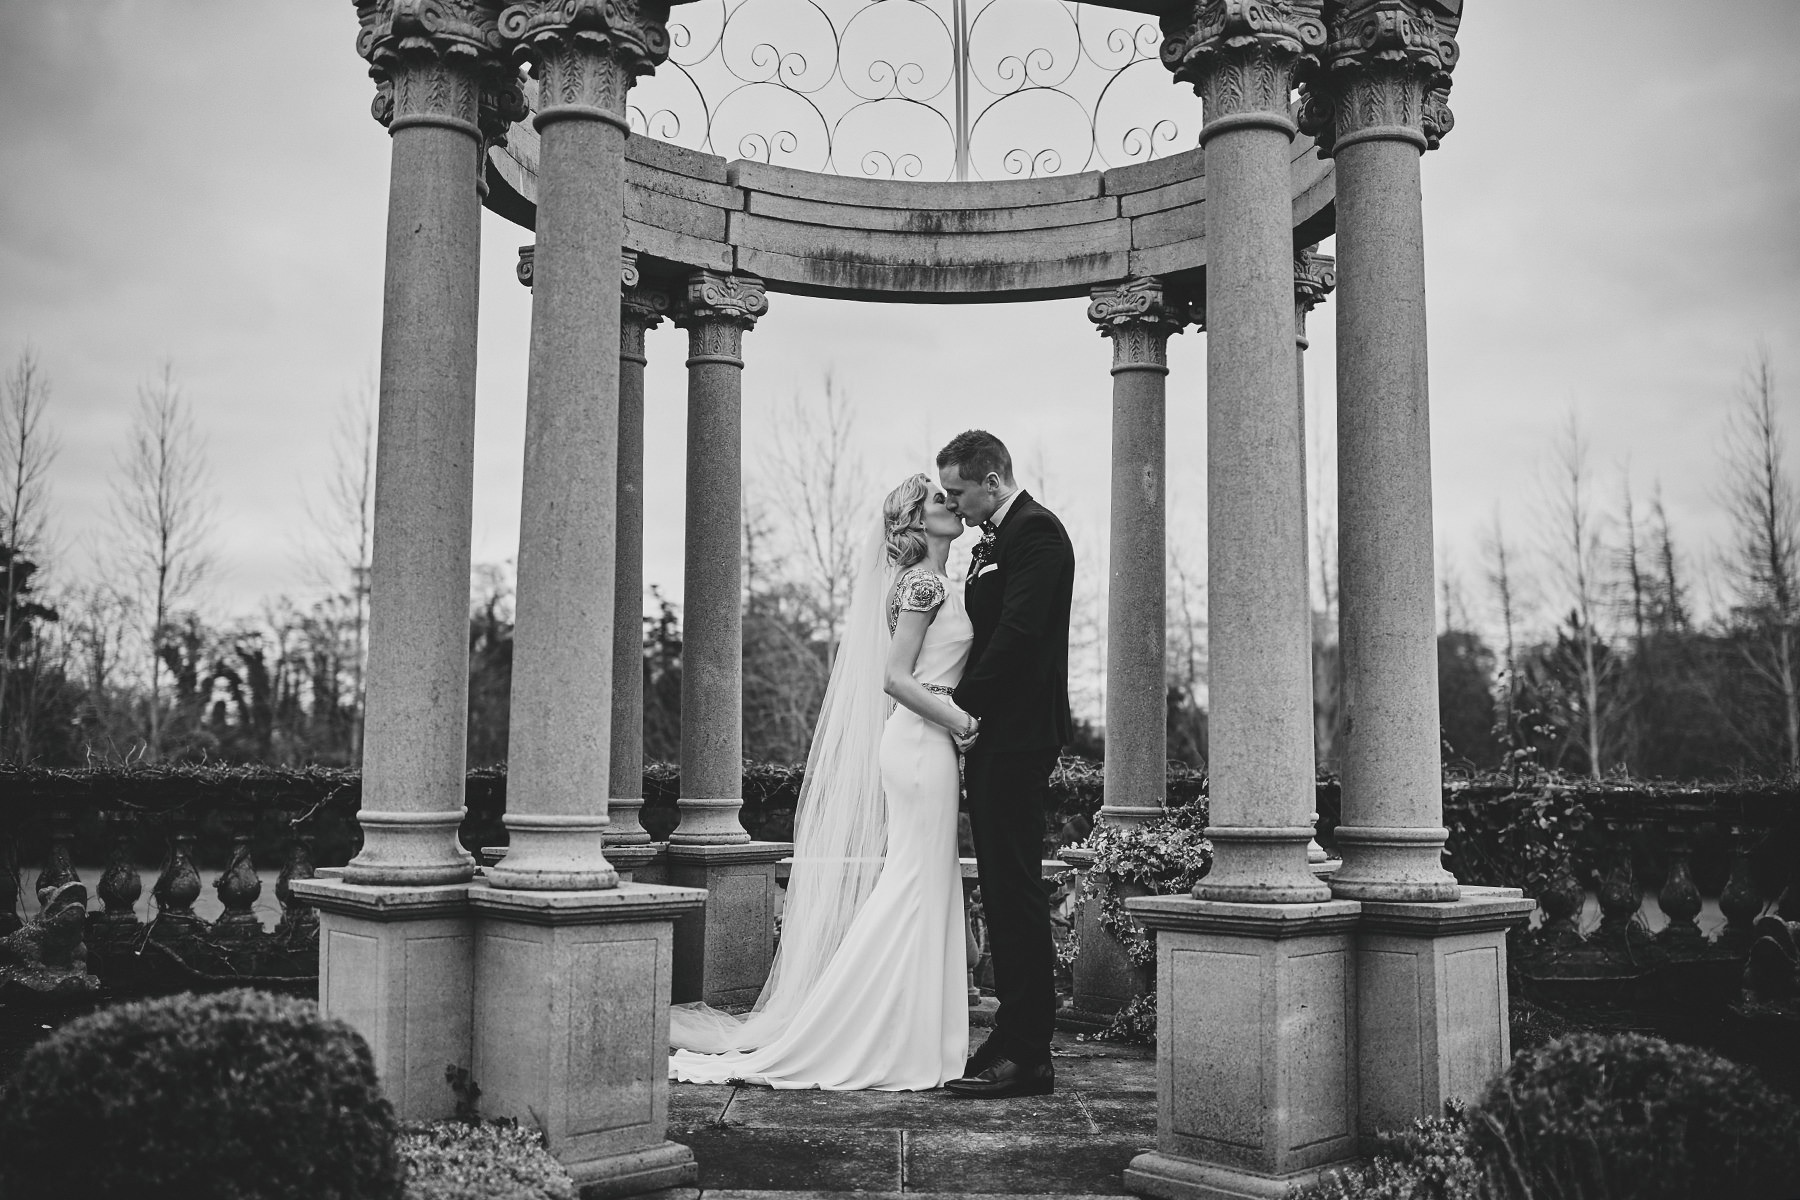 Perfcet Wedding Venue Dublin Palmerstown Estate033 - Perfect Wedding Venue close to Dublin?